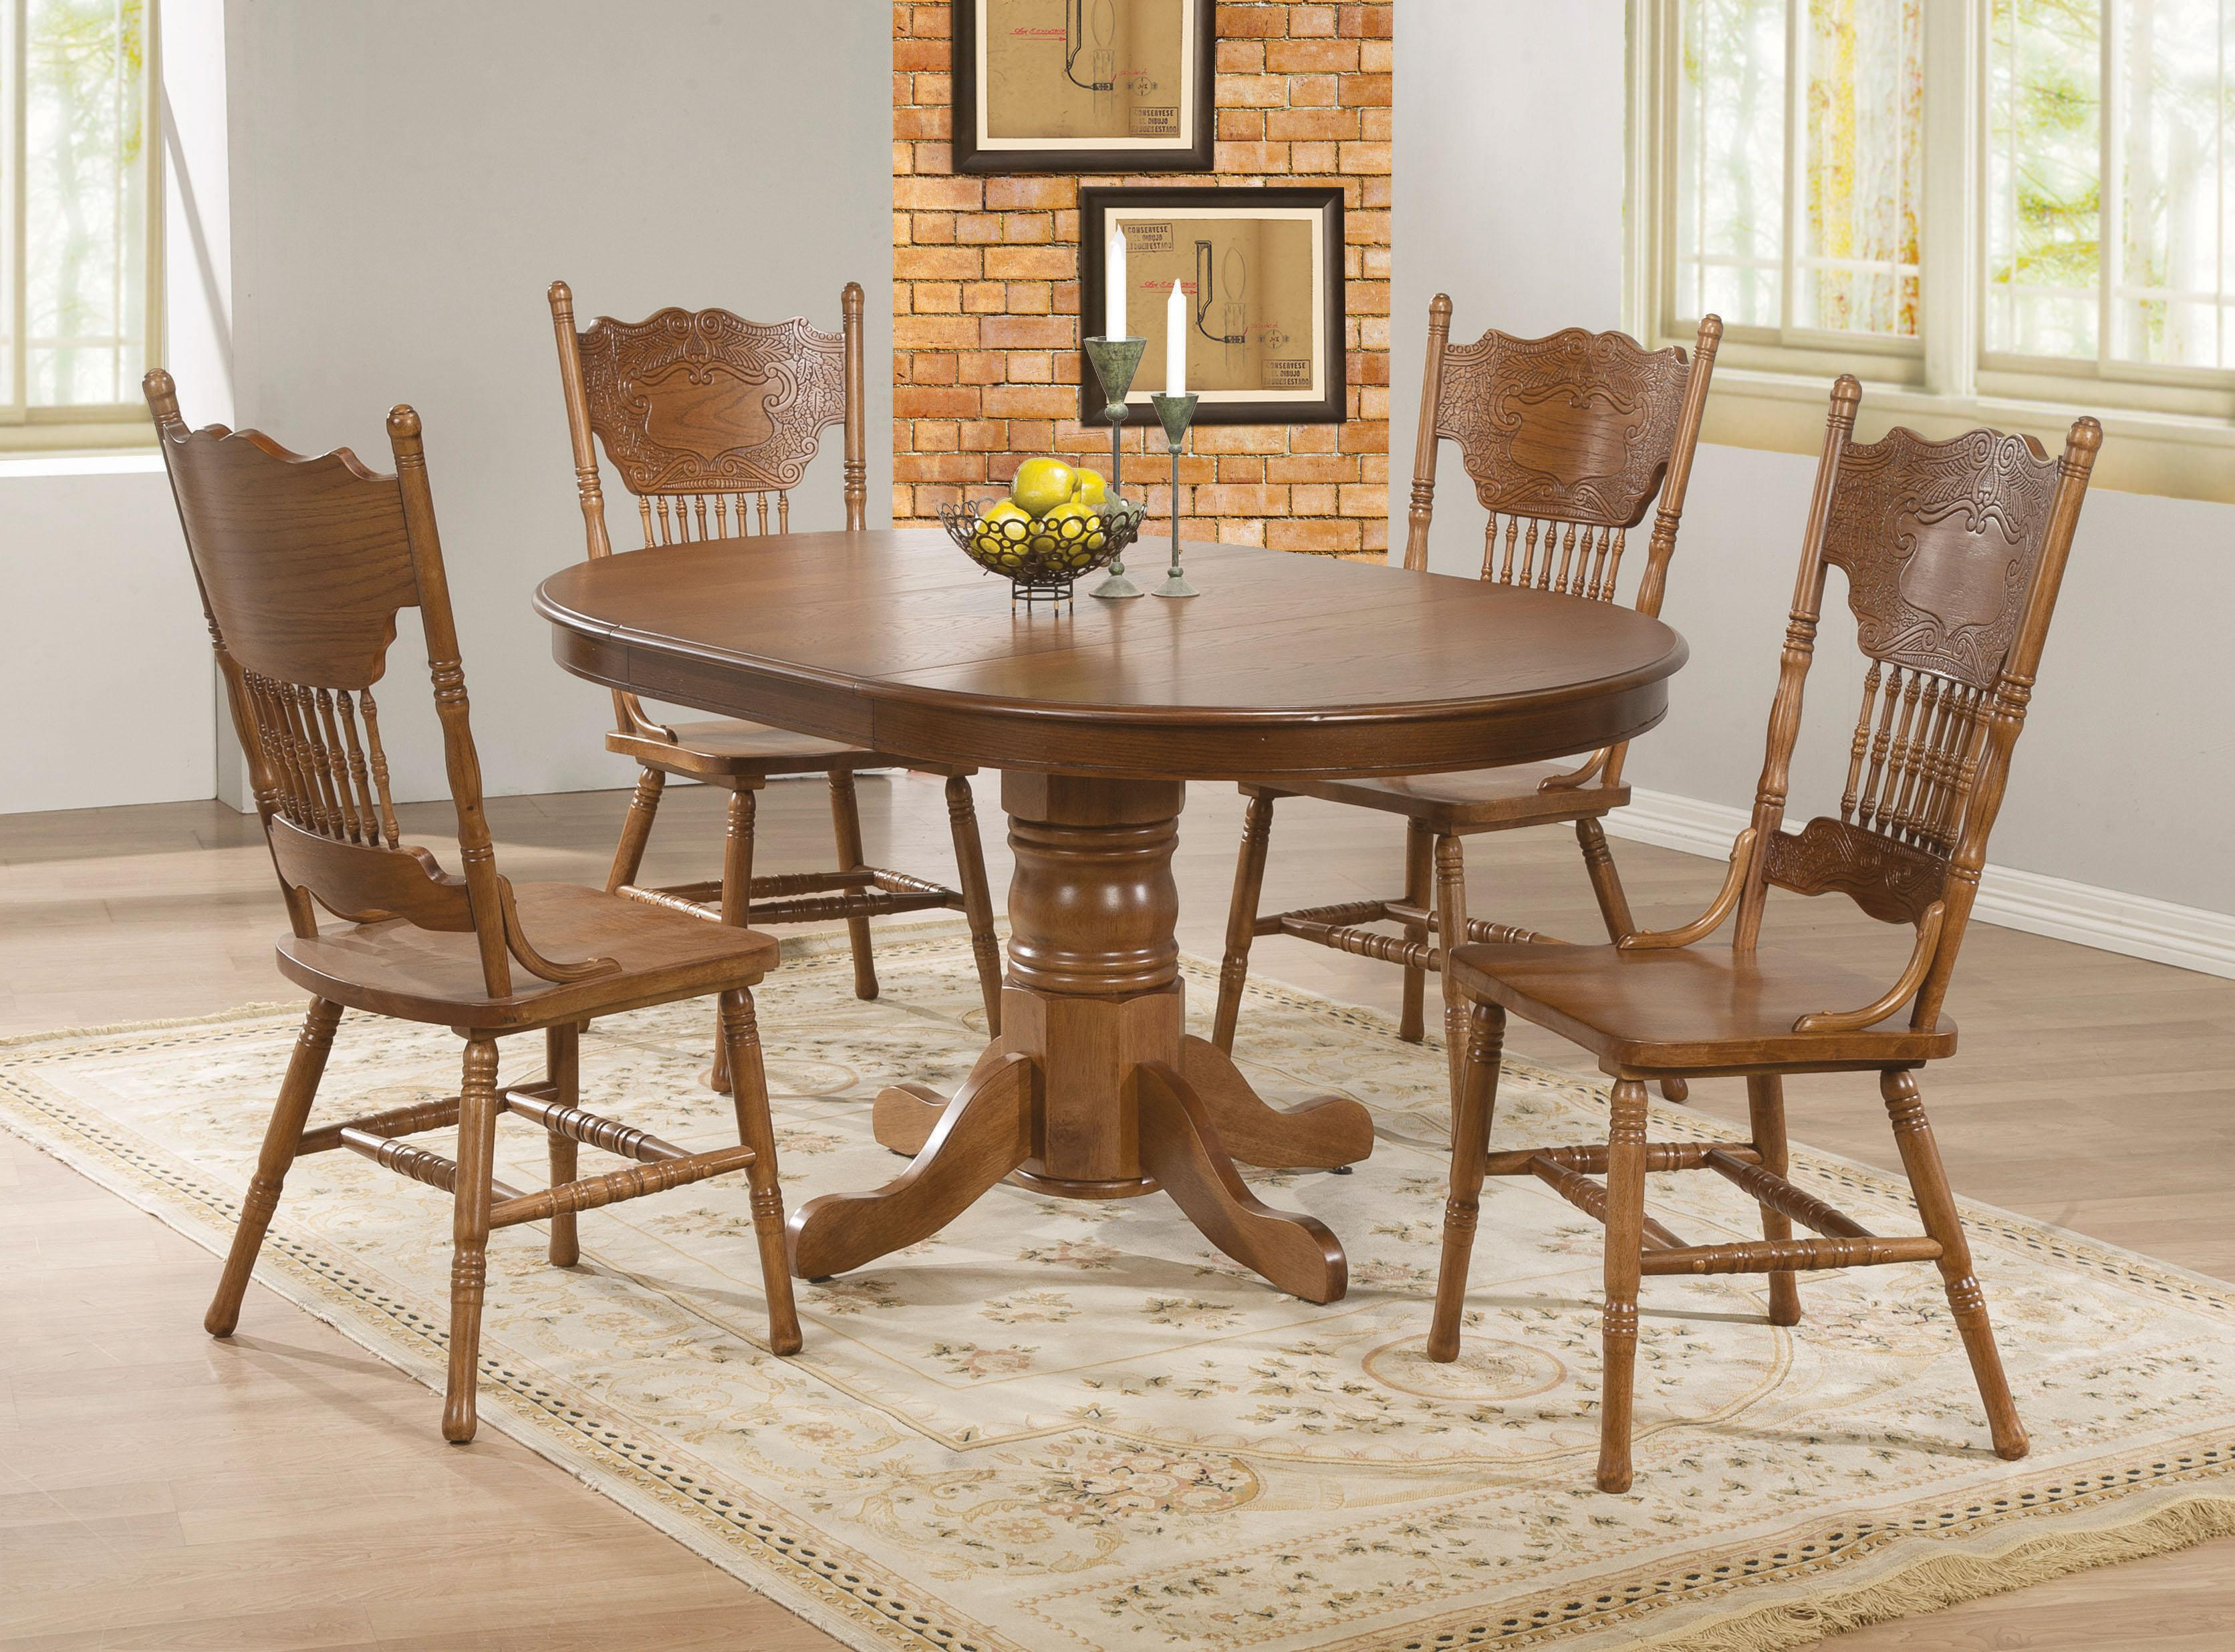 Oak dining room chairs - Coaster Brooks Oak Finish Round Oval Dining Table With Single Pedestal Decorative Apron Value City Furniture Dining Tables